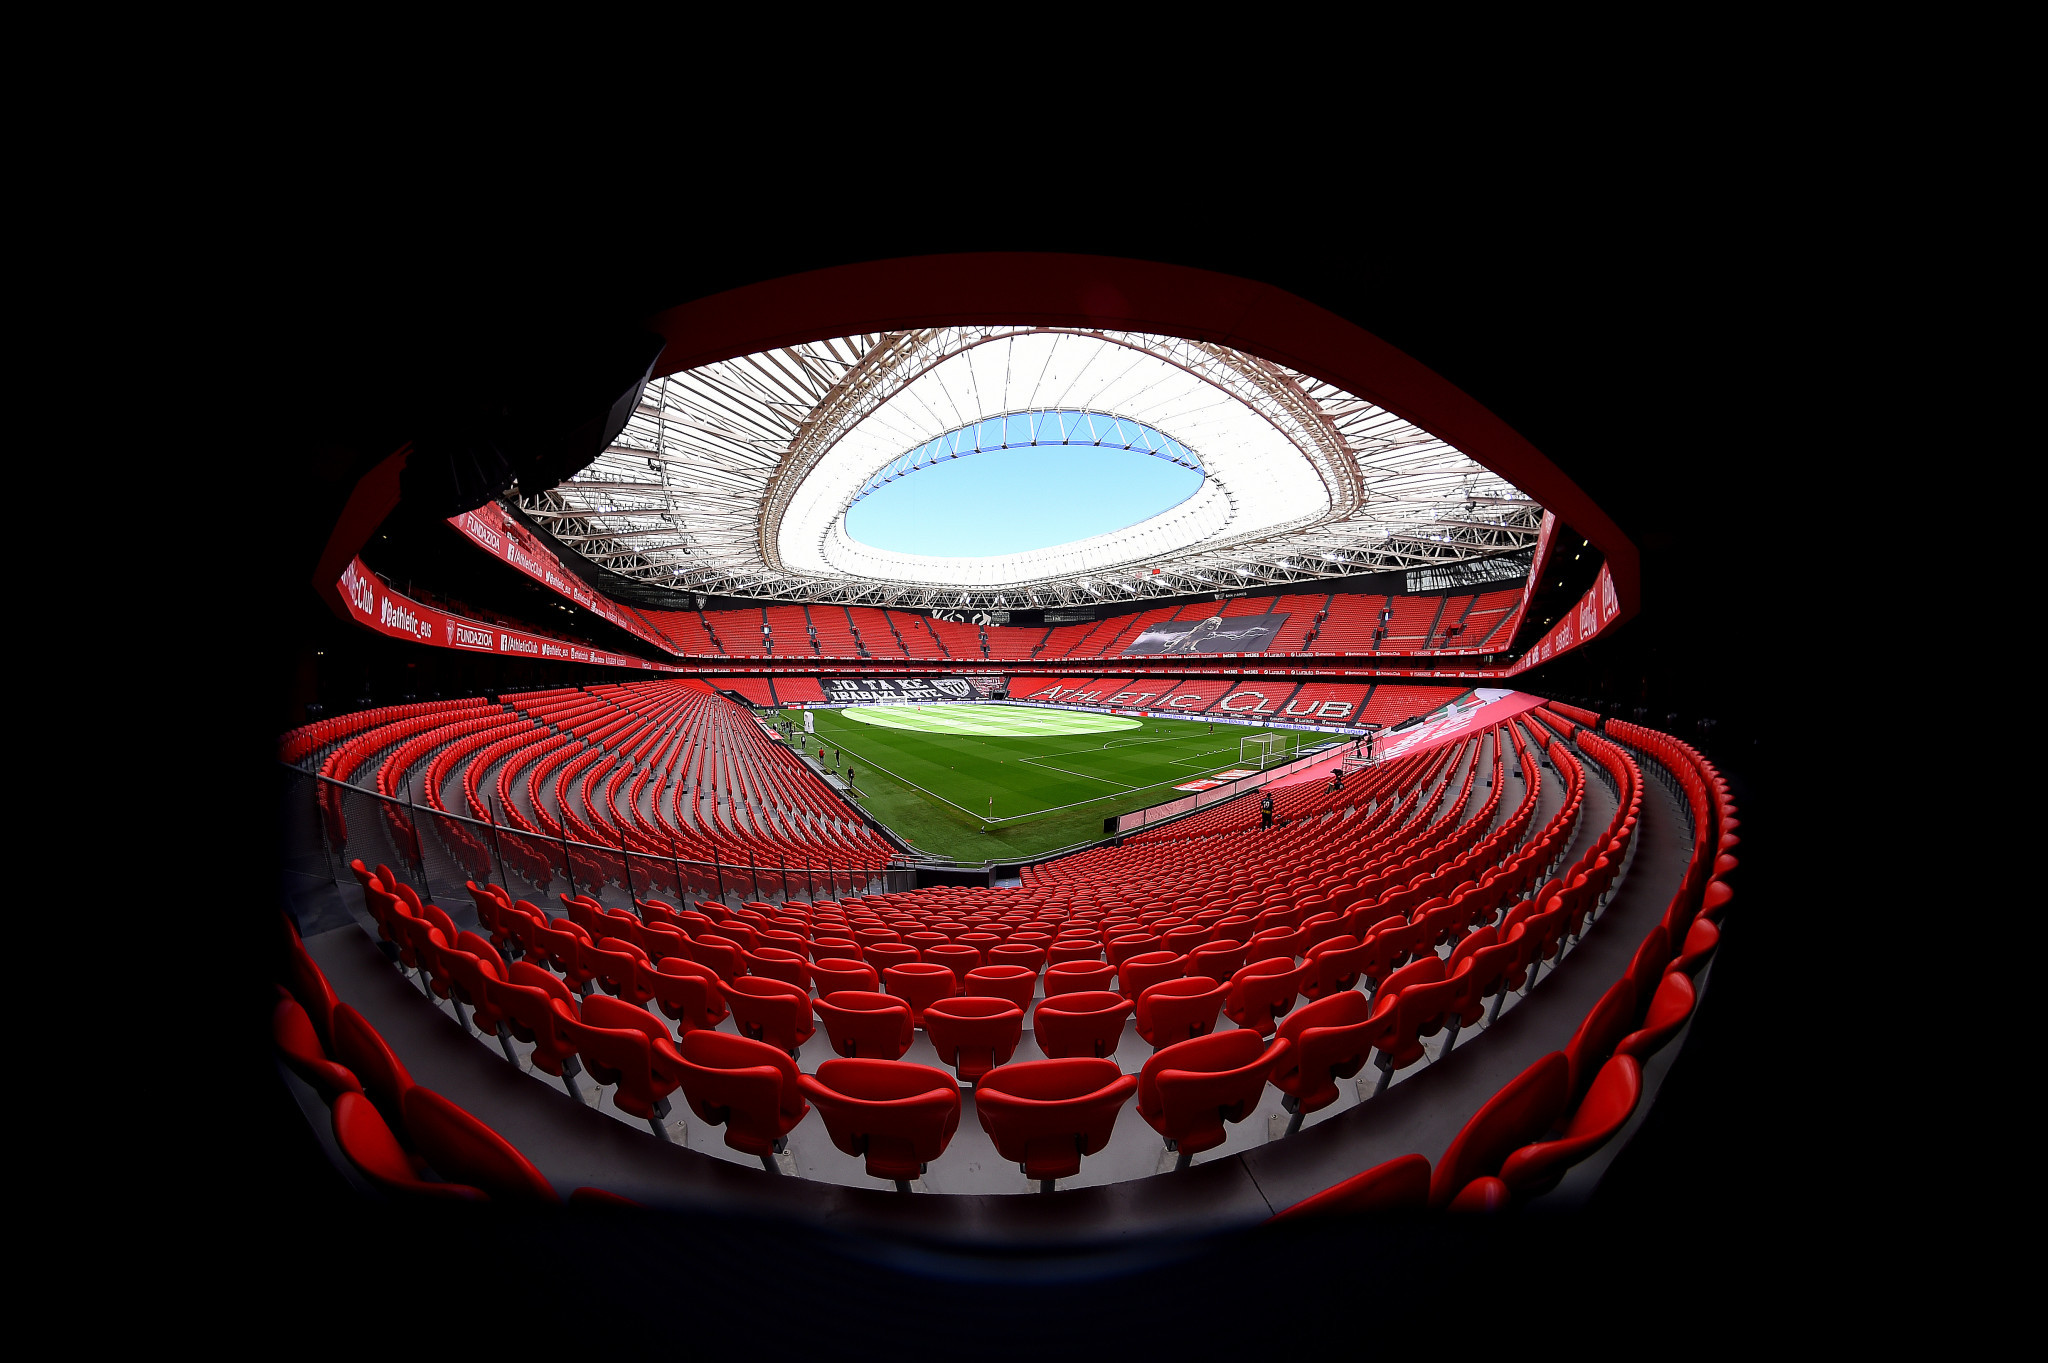 Dublin and Bilbao may lose Euro 2020 games as no assurances on spectators offered